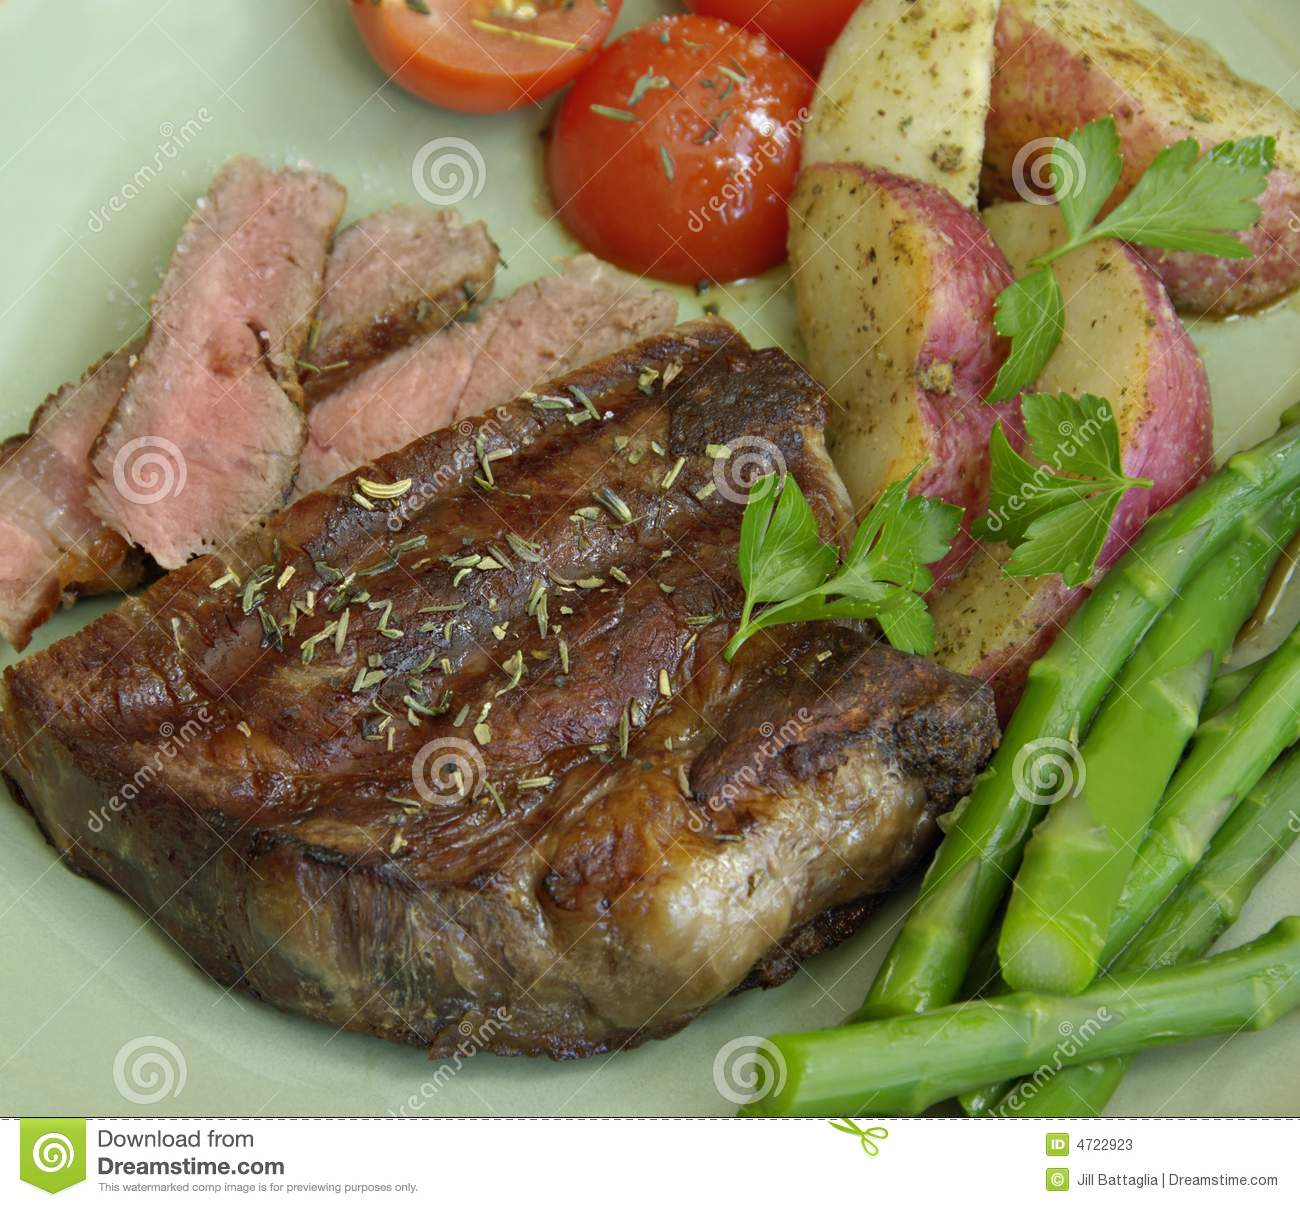 Grilled steak with roasted potatoes, tomatoes, and asparagus.